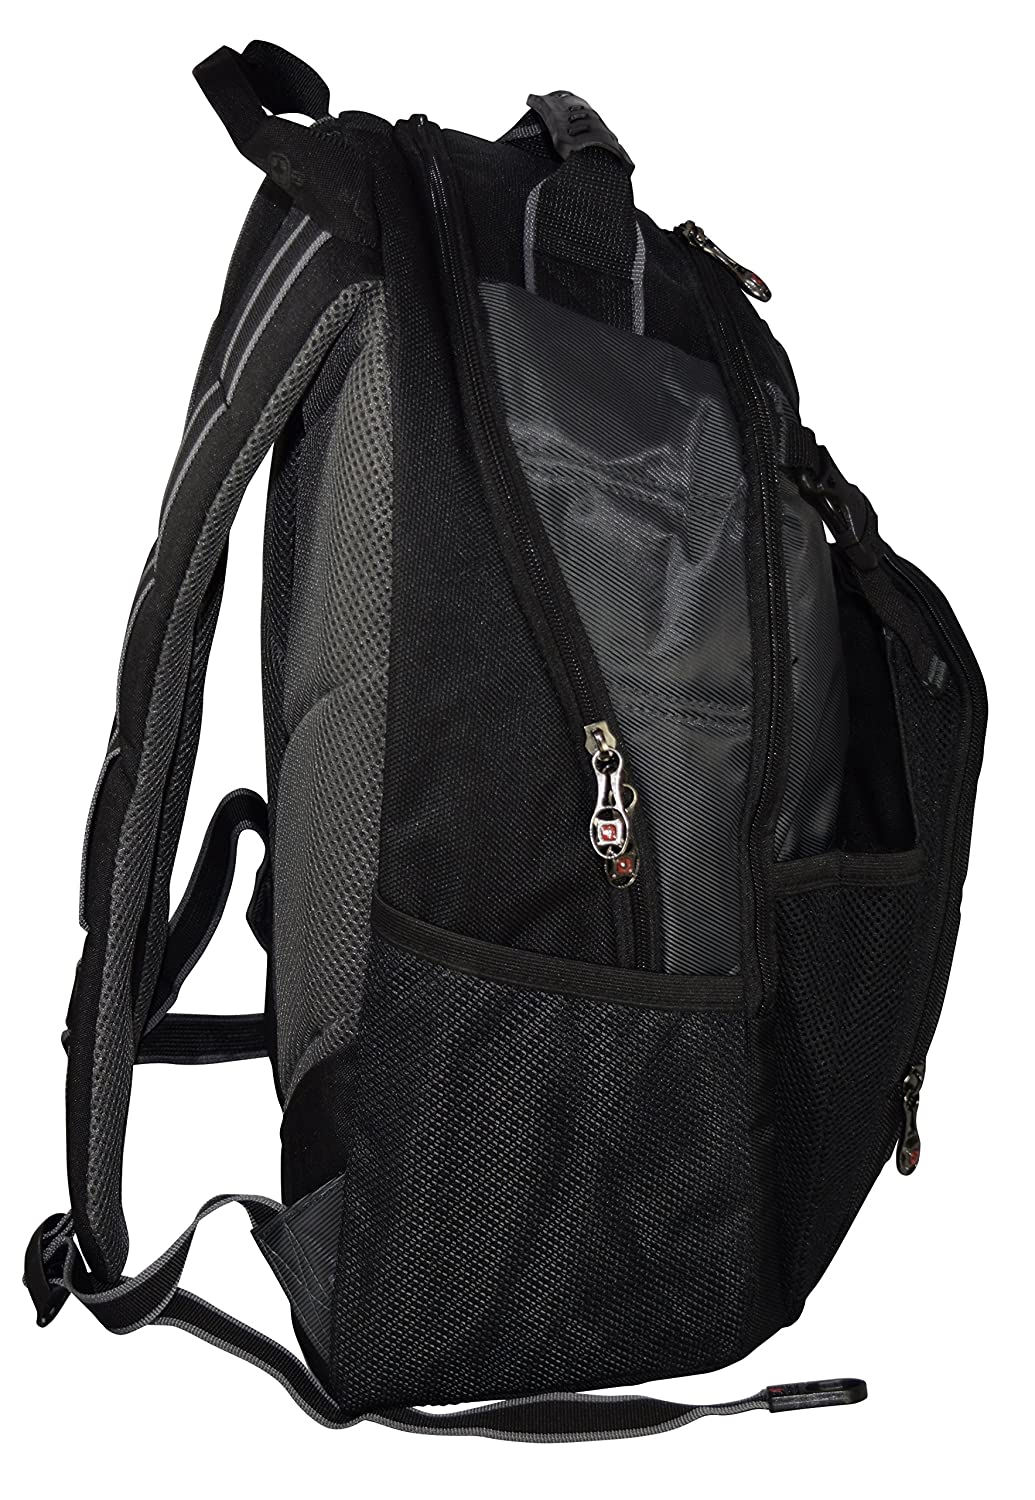 Targus Synergy Laptop Backpack- Fenix Toulouse Handball 598134e9be9de